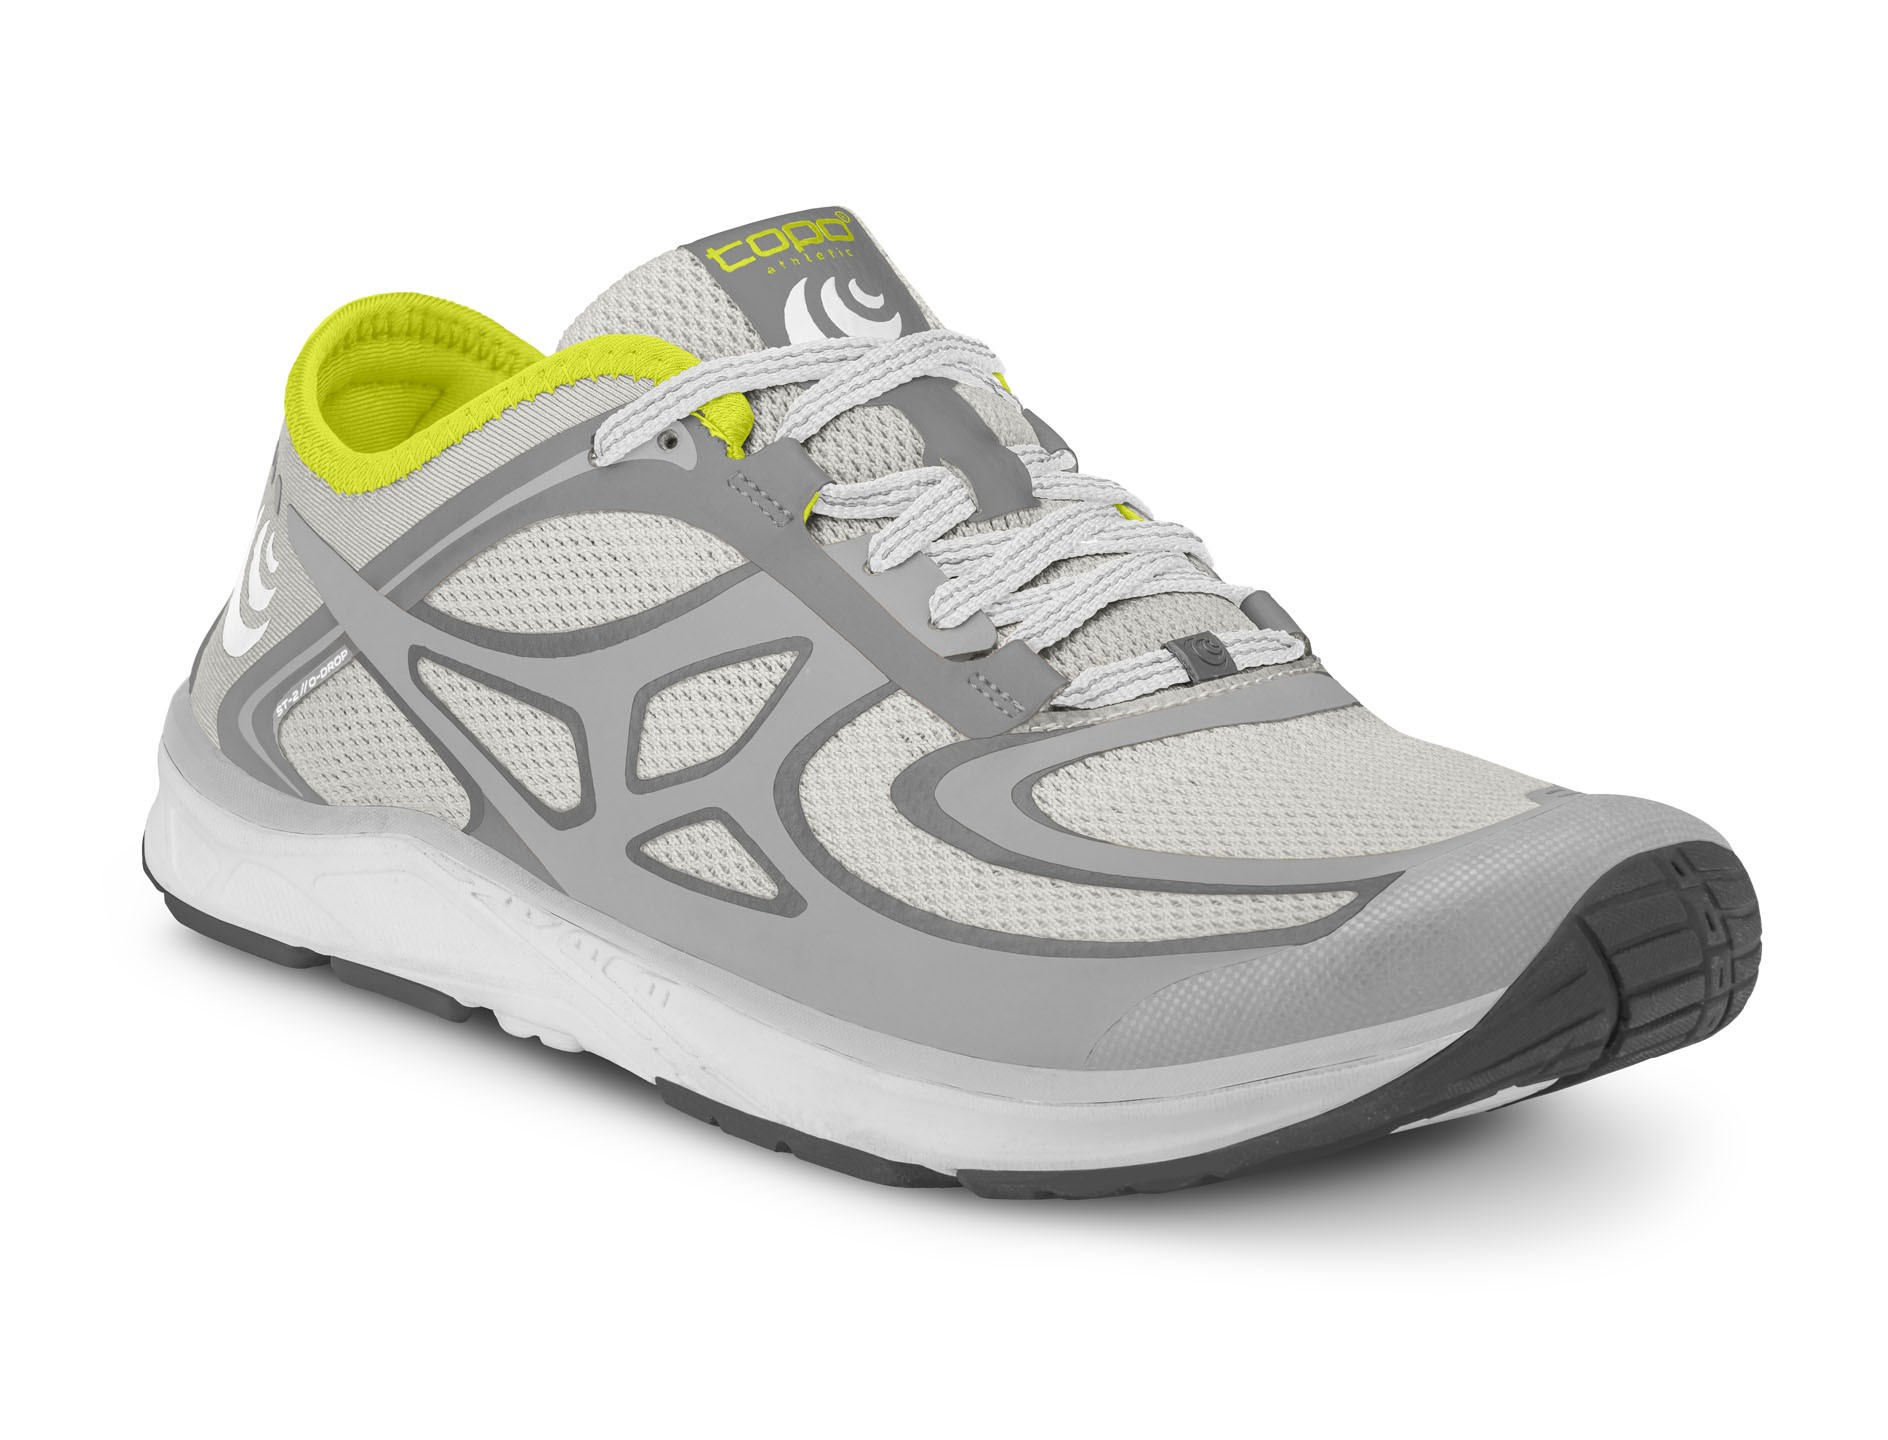 Competitor - Shoe of the Week - ST-2